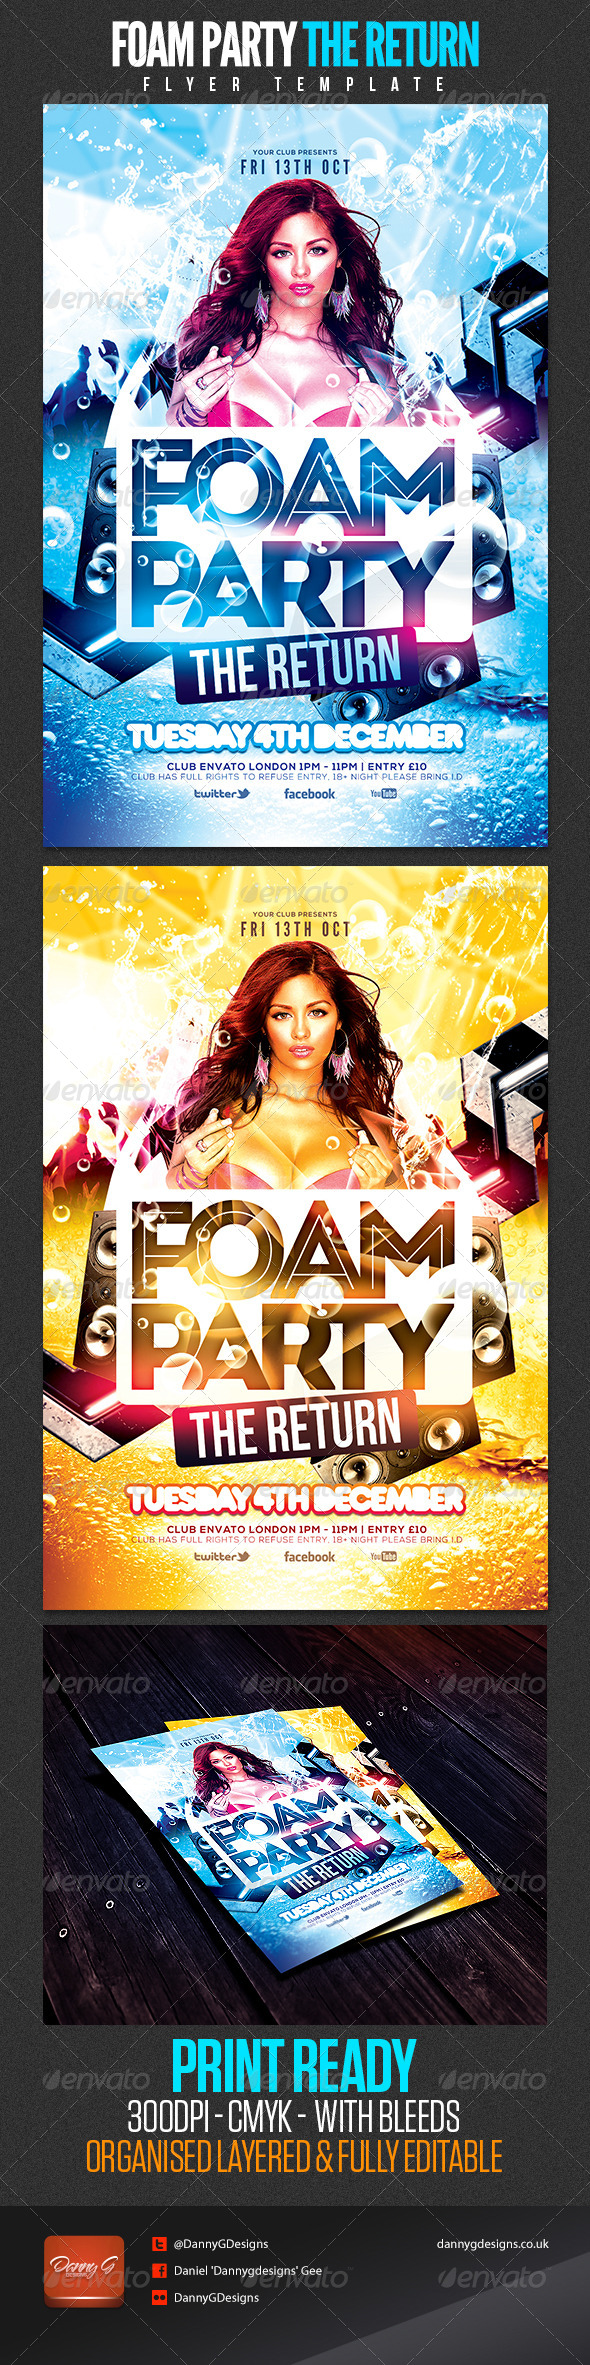 Foam Party The Return Flyer Template - Clubs & Parties Events